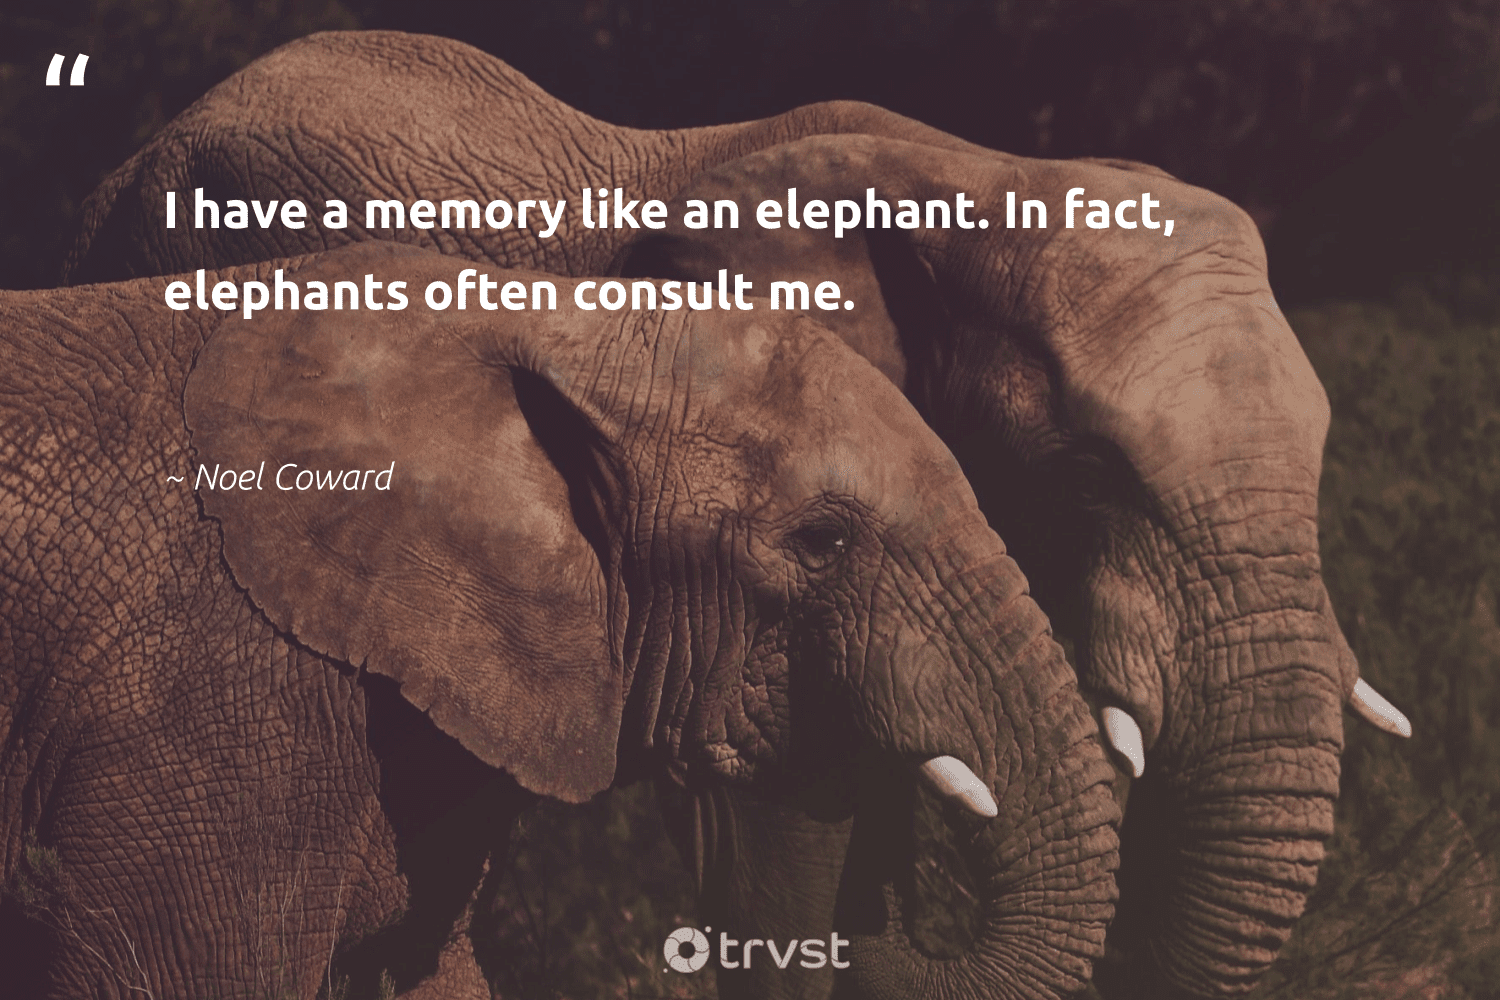 """""""I have a memory like an elephant. In fact, elephants often consult me.""""  - Noel Coward #trvst #quotes #elephants #wildgeography #takeaction #mammals #thinkgreen #elephantlove #dosomething #explore #beinspired #endangeredspecies"""